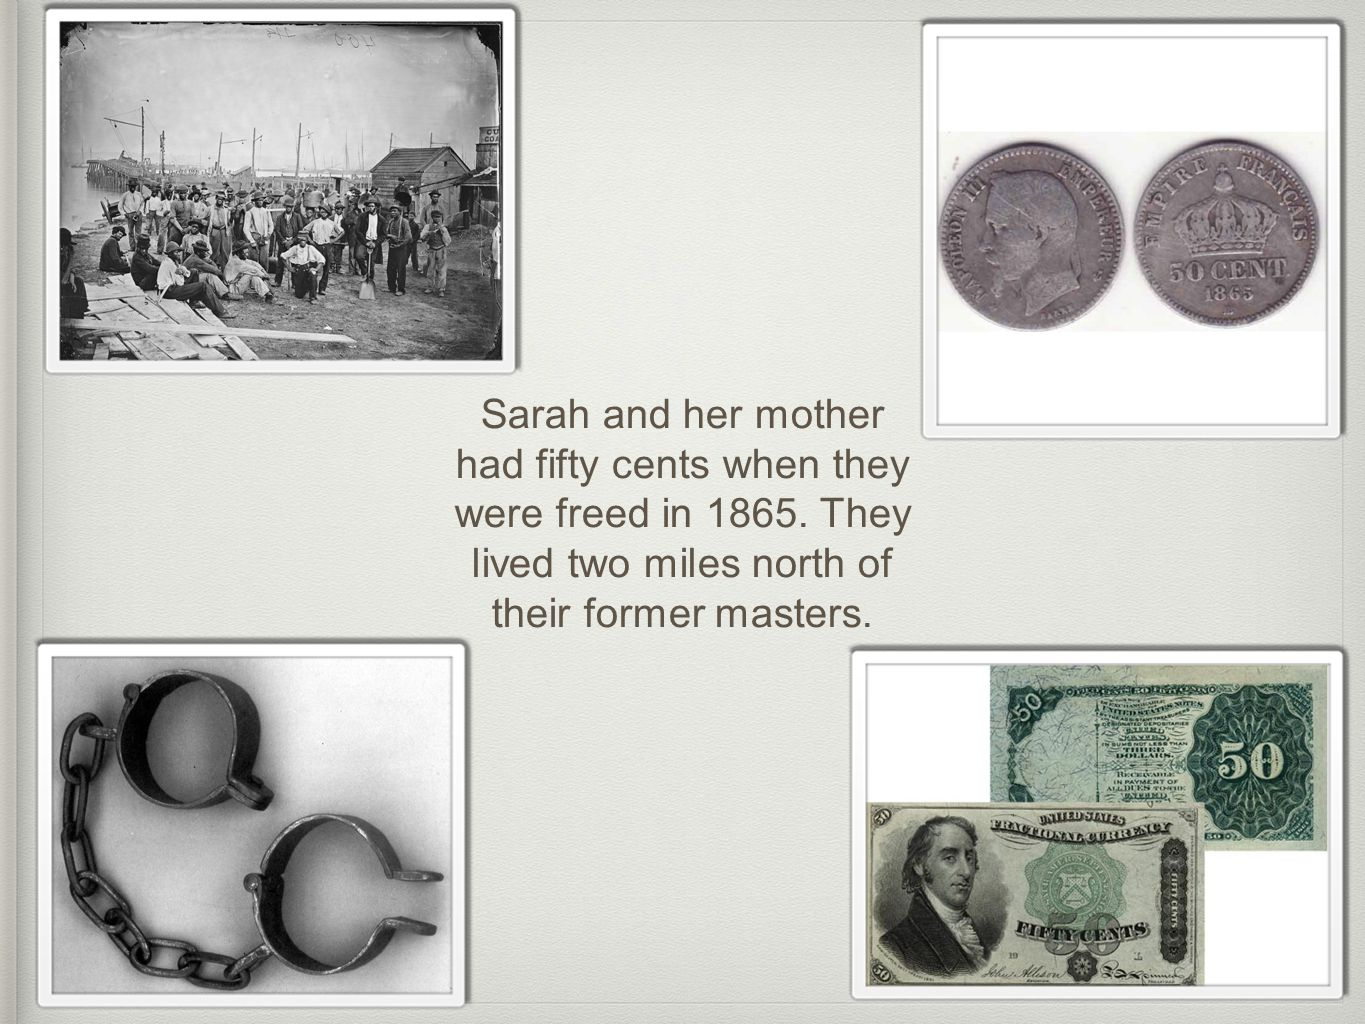 Sarah and her mother had fifty cents when they were freed in 1865.